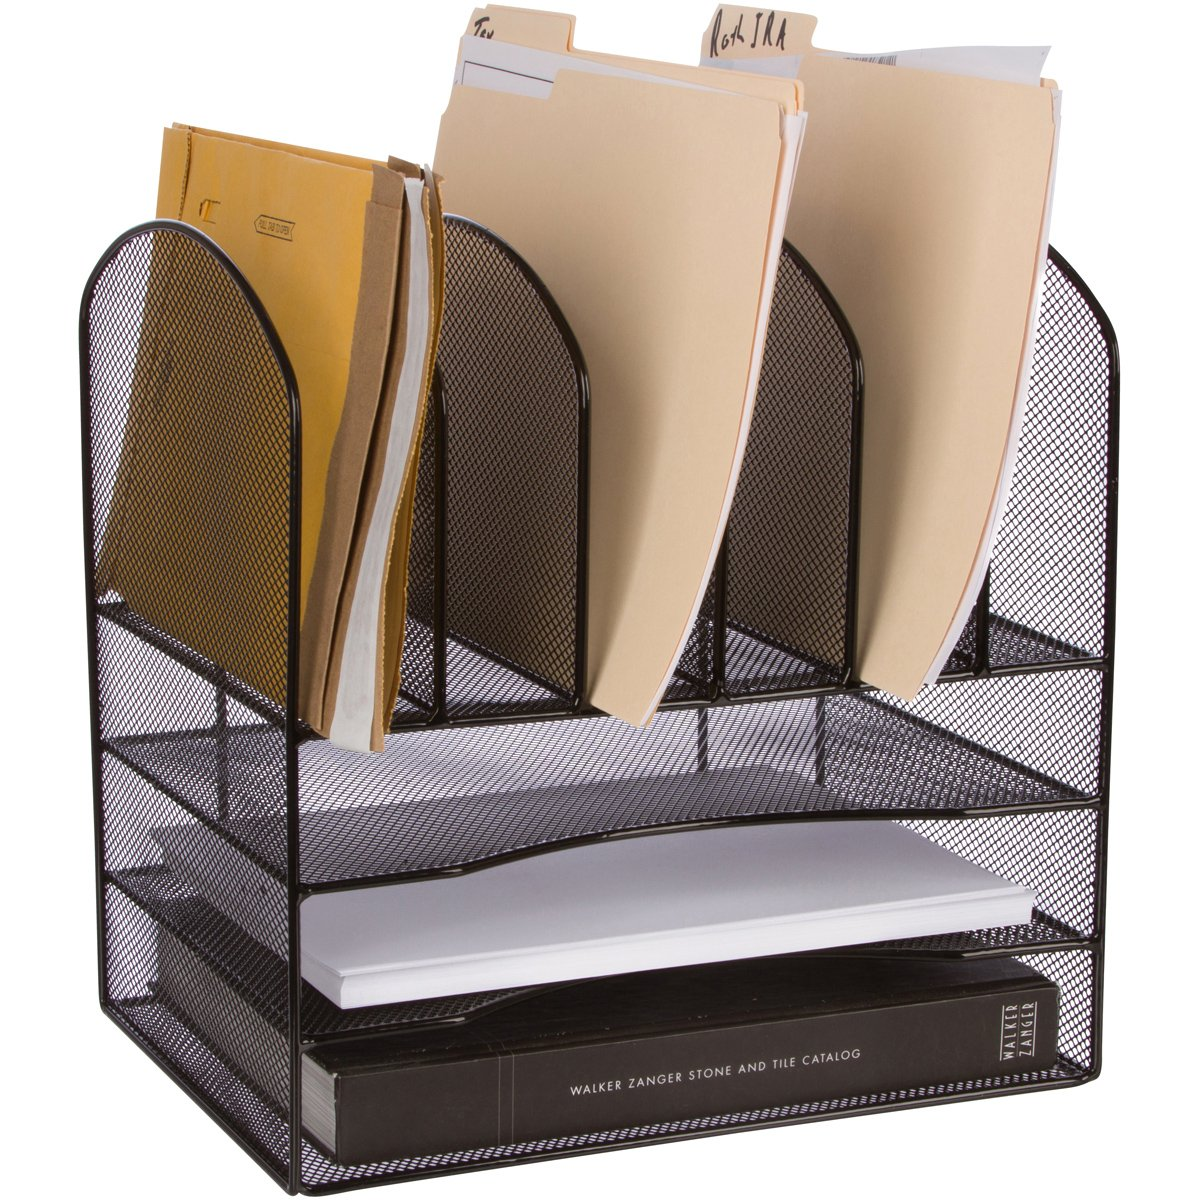 "STYLISH Desk File Organizer - ""Zero"" Assembly - 33% more space - Perfect for desktop paper, inbox tray, sorter - Black Wire Mesh"